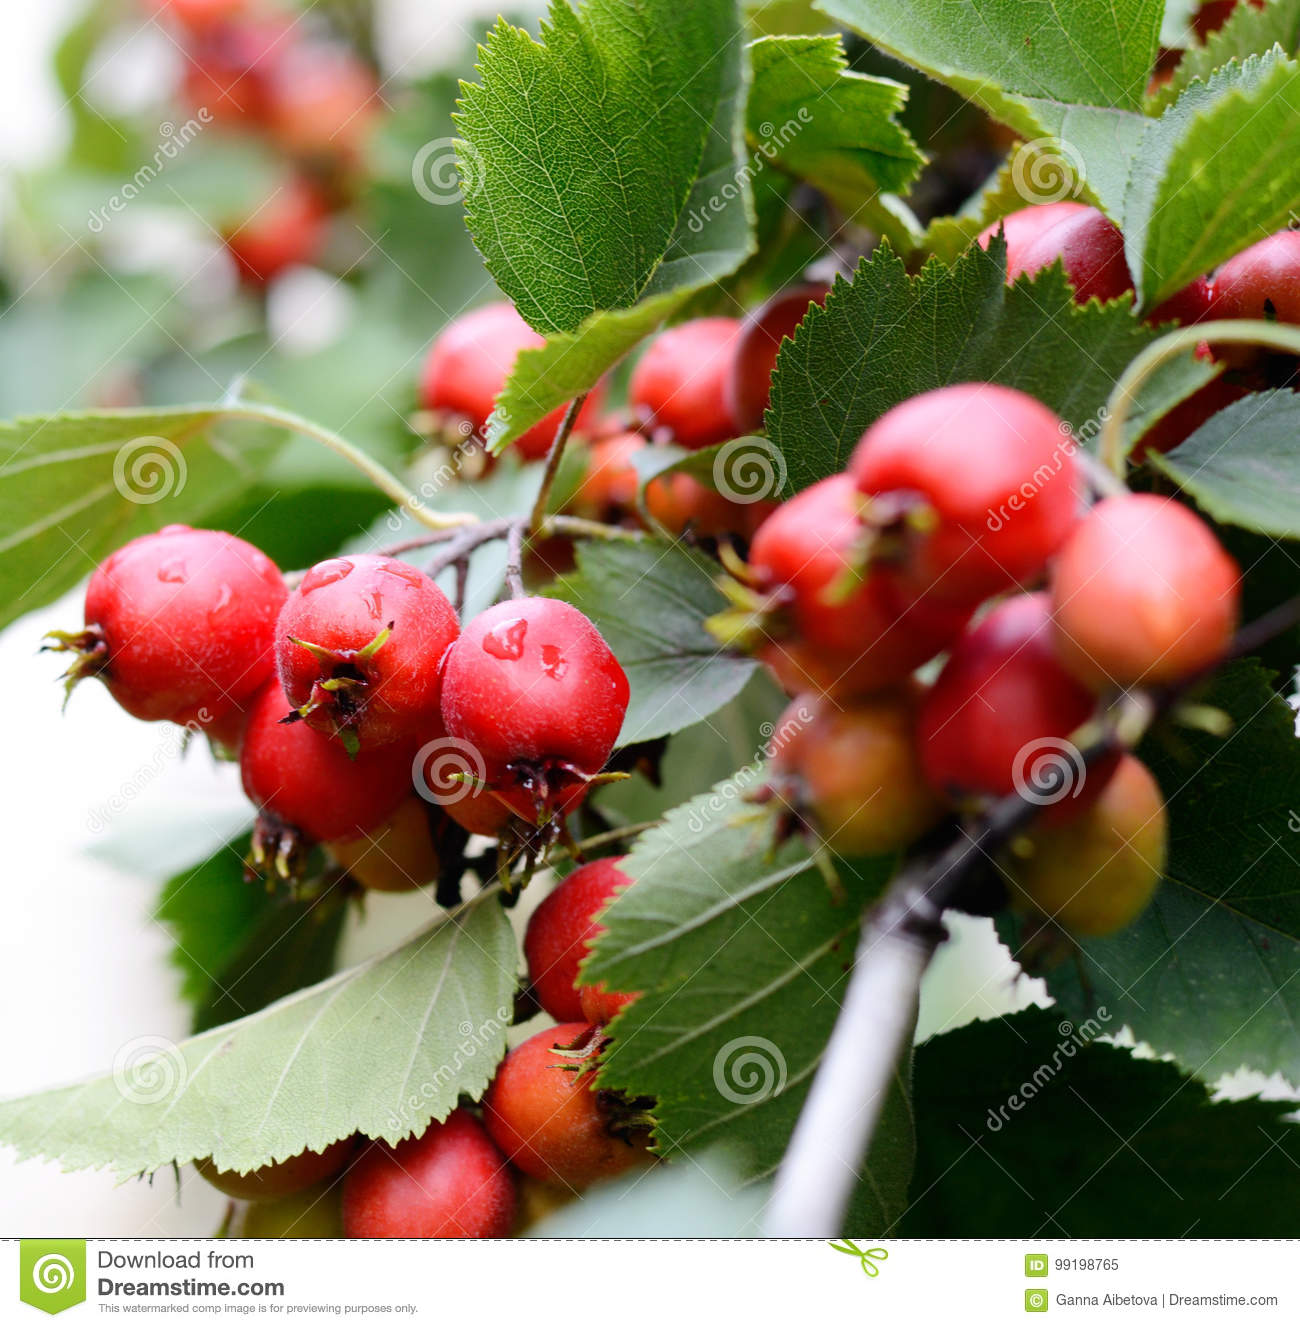 Hawthorn Red Berries With Briht Green Leaves On A Tree